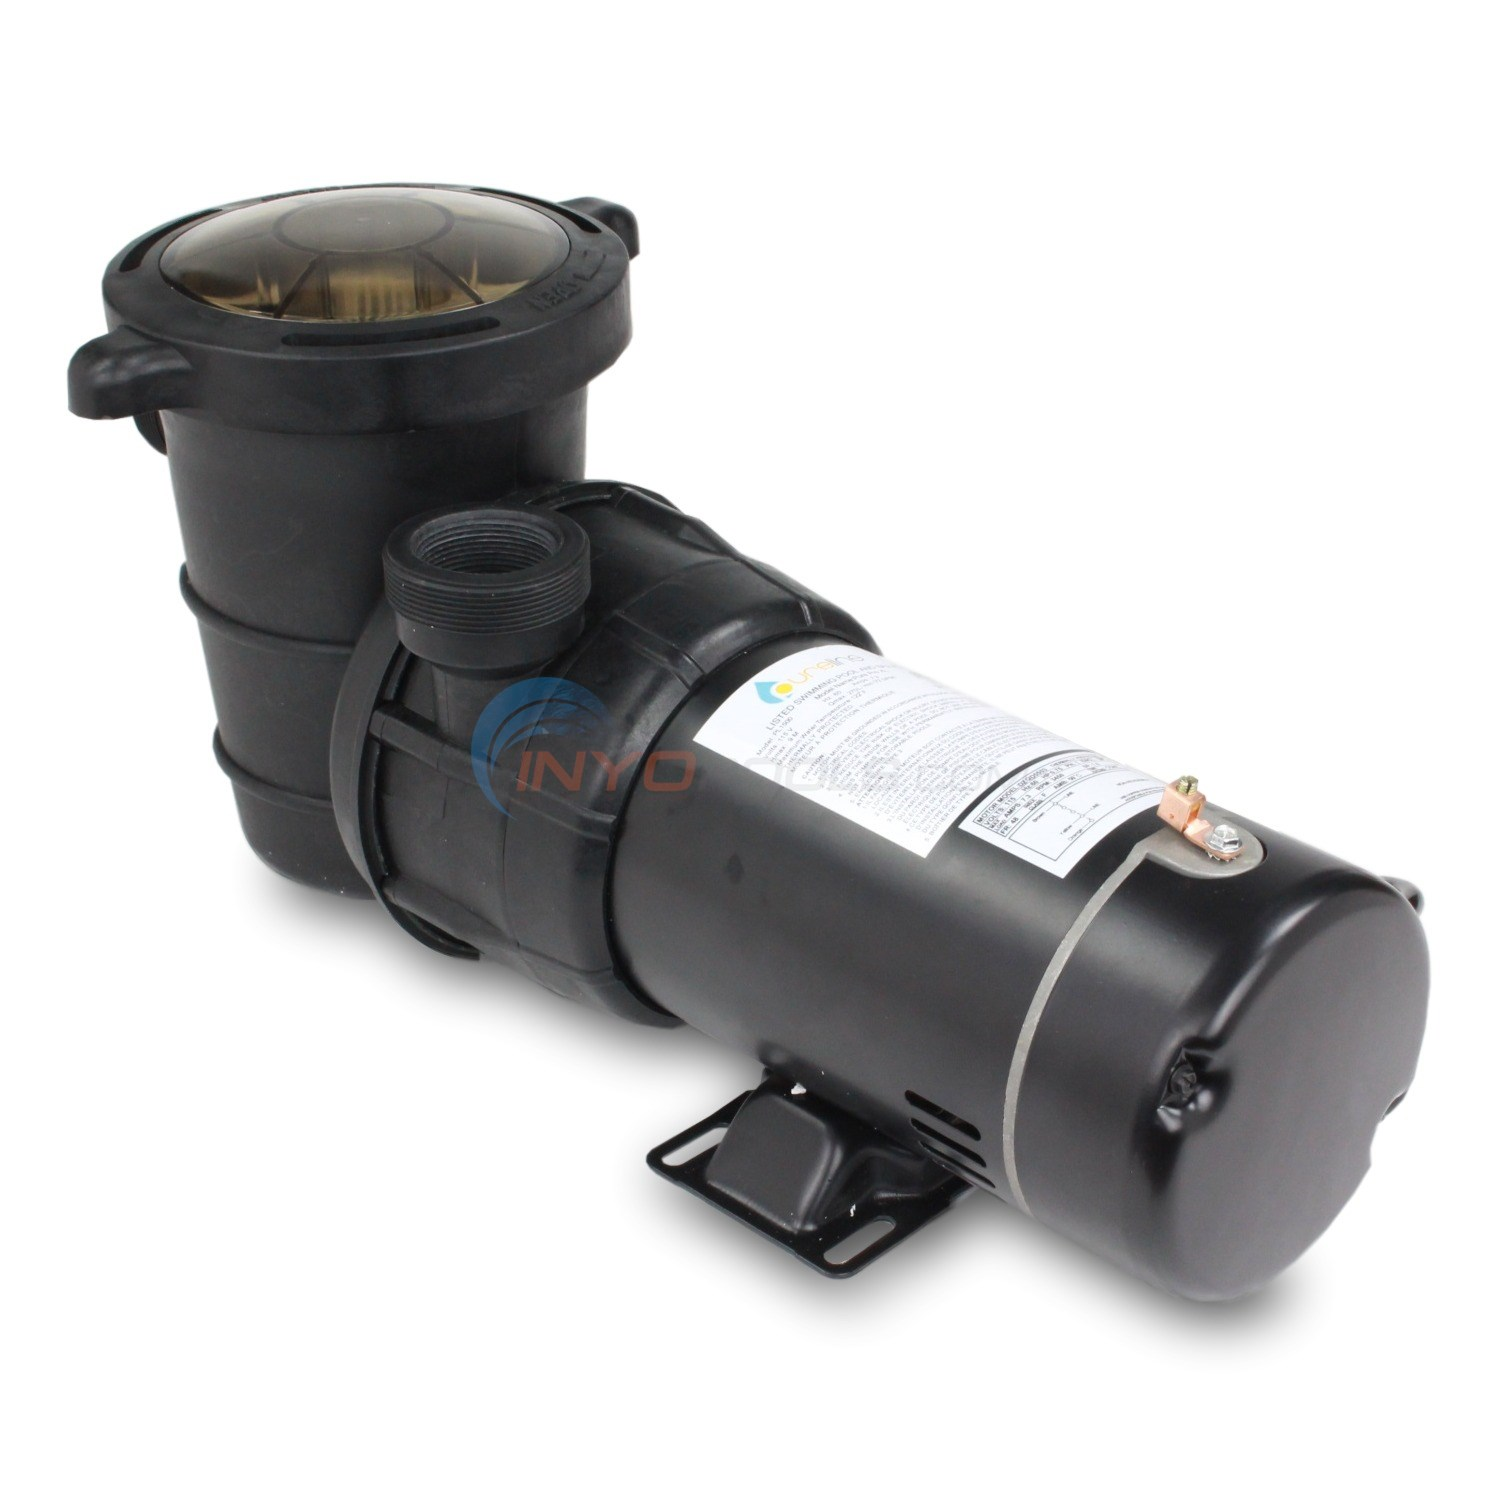 PureLine 3/4 HP Above Ground Pool Pump - NE6150B